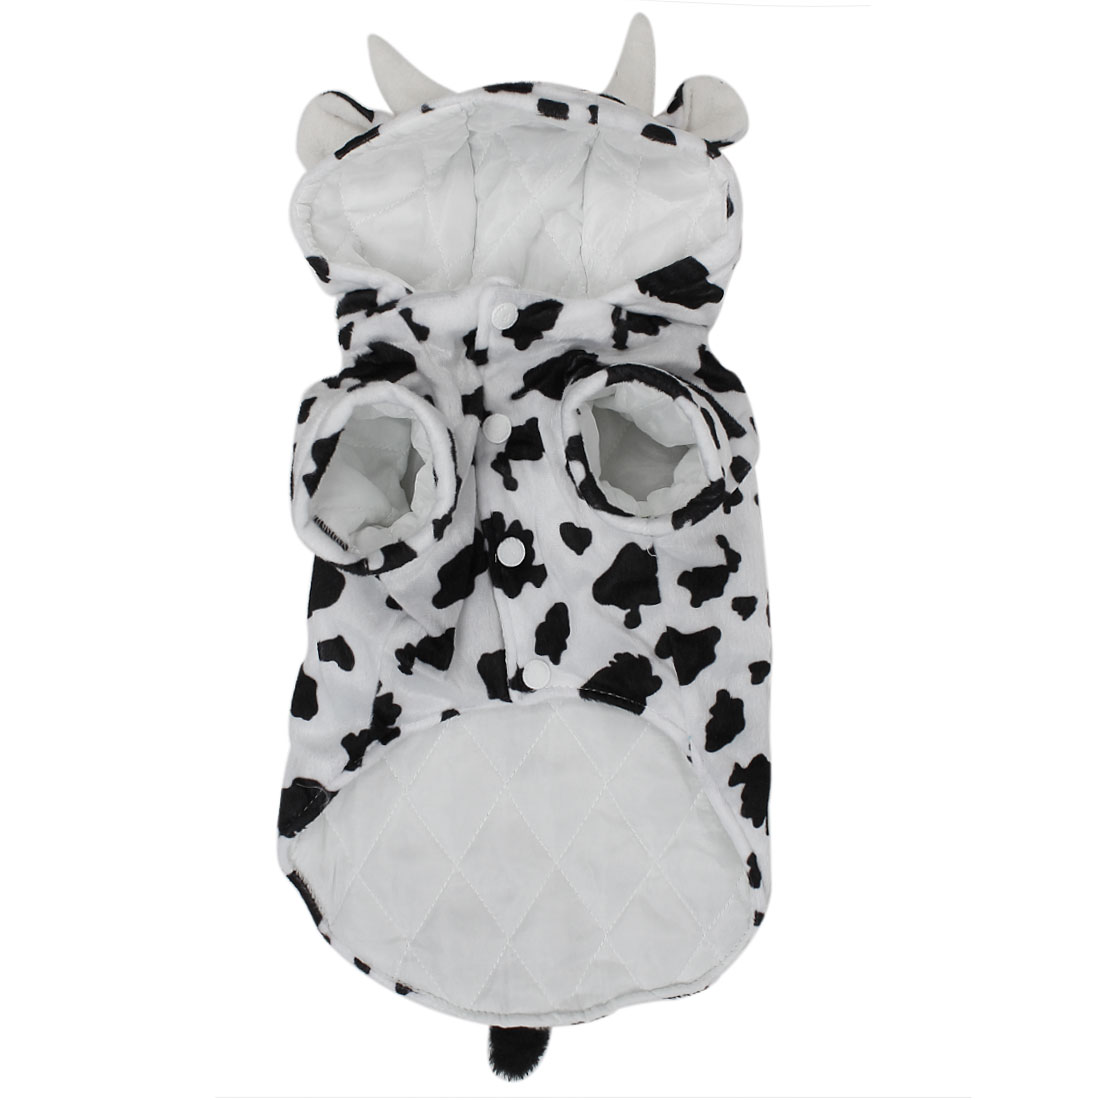 Cows Style Pet Dog Puppy Cosplay Hooded Coat Clothes Costume Black White Size L